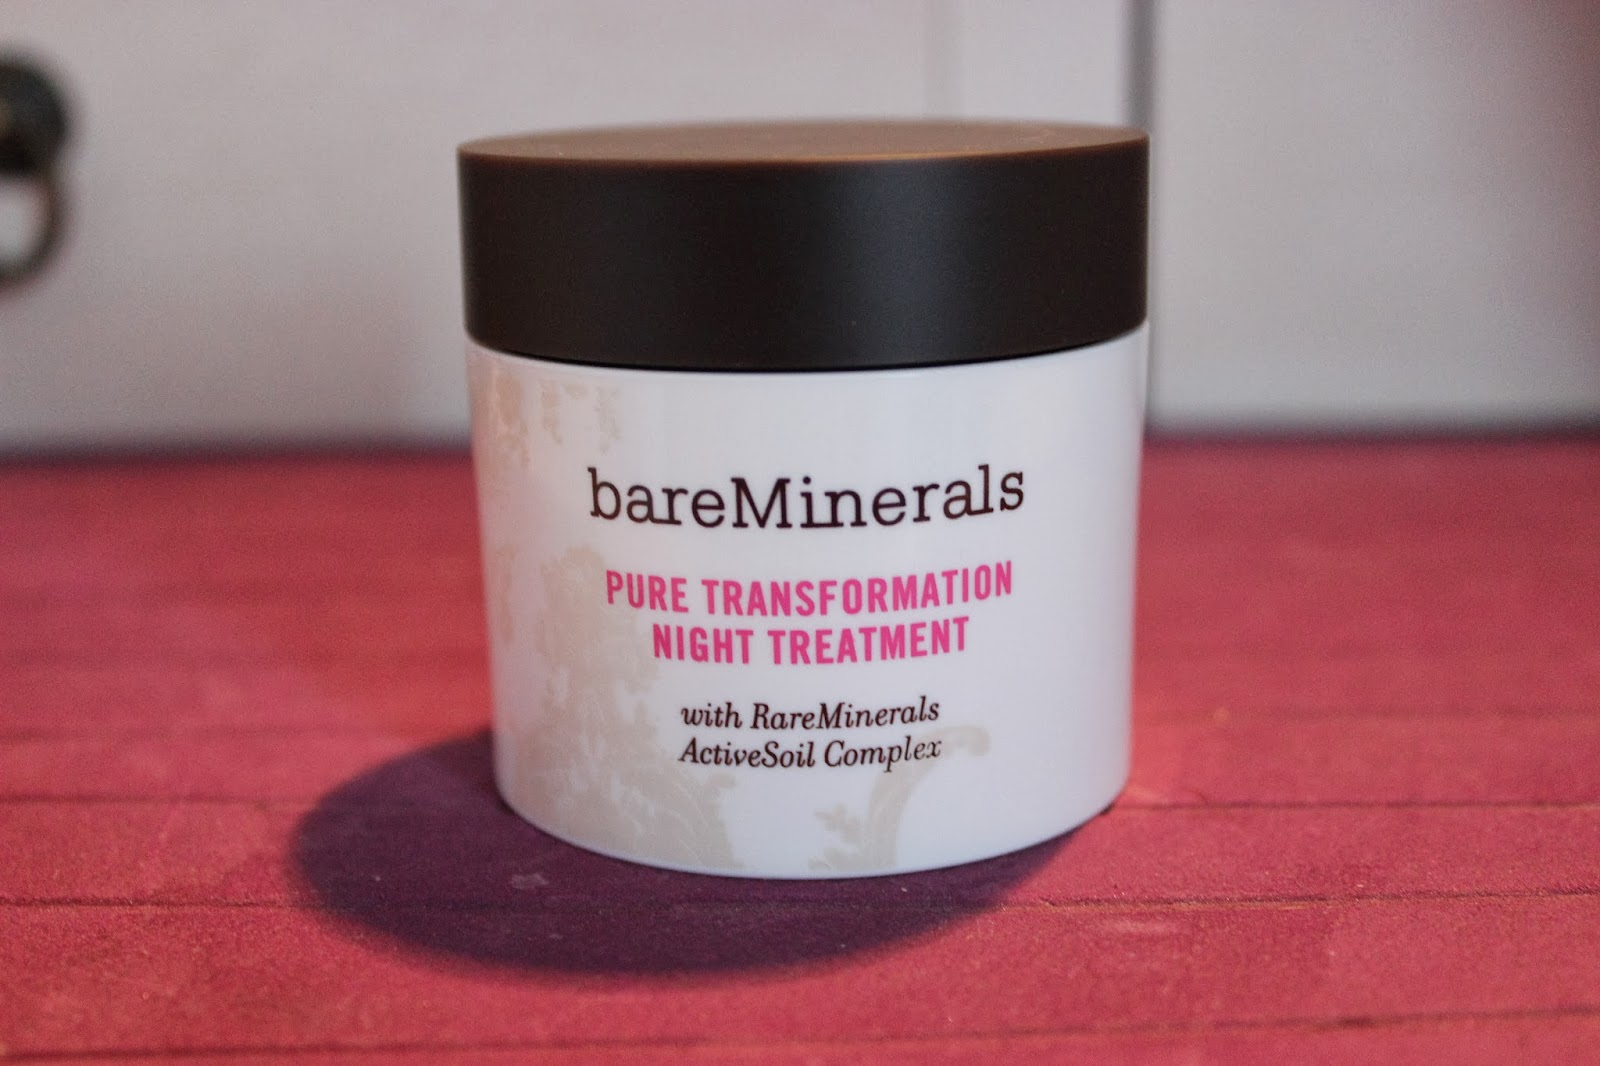 Pure Transformation Night Treatment de bareMinerals